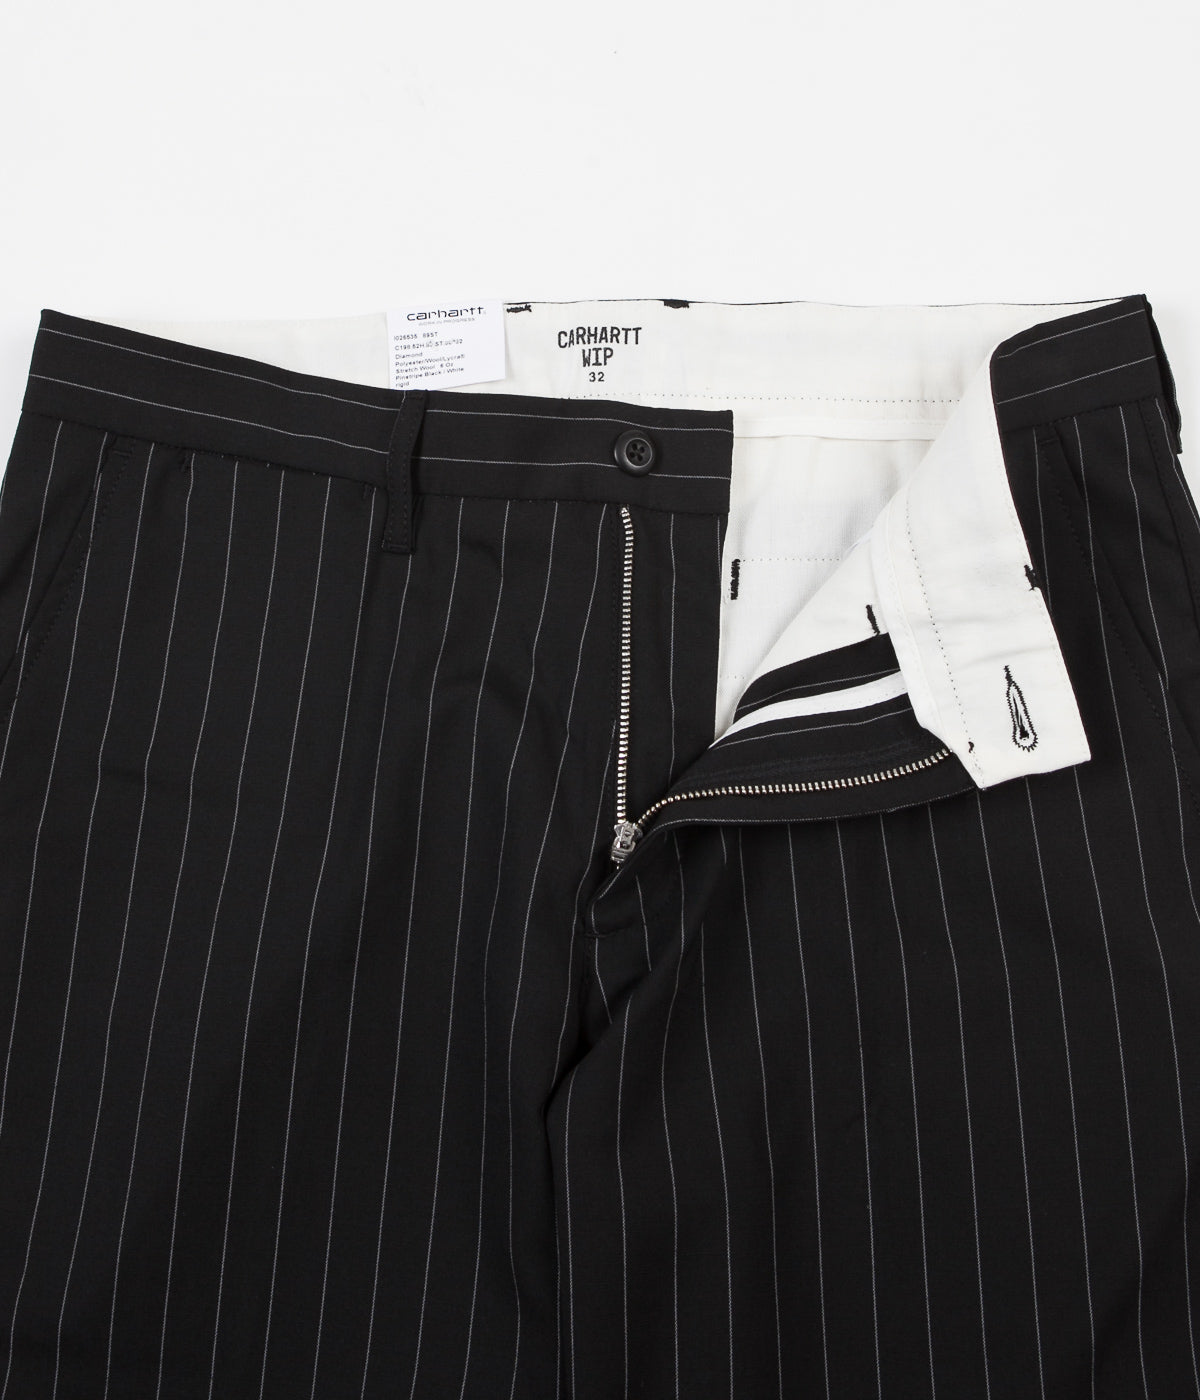 Carhartt Johnson Shorts - Pinstripe Black / White